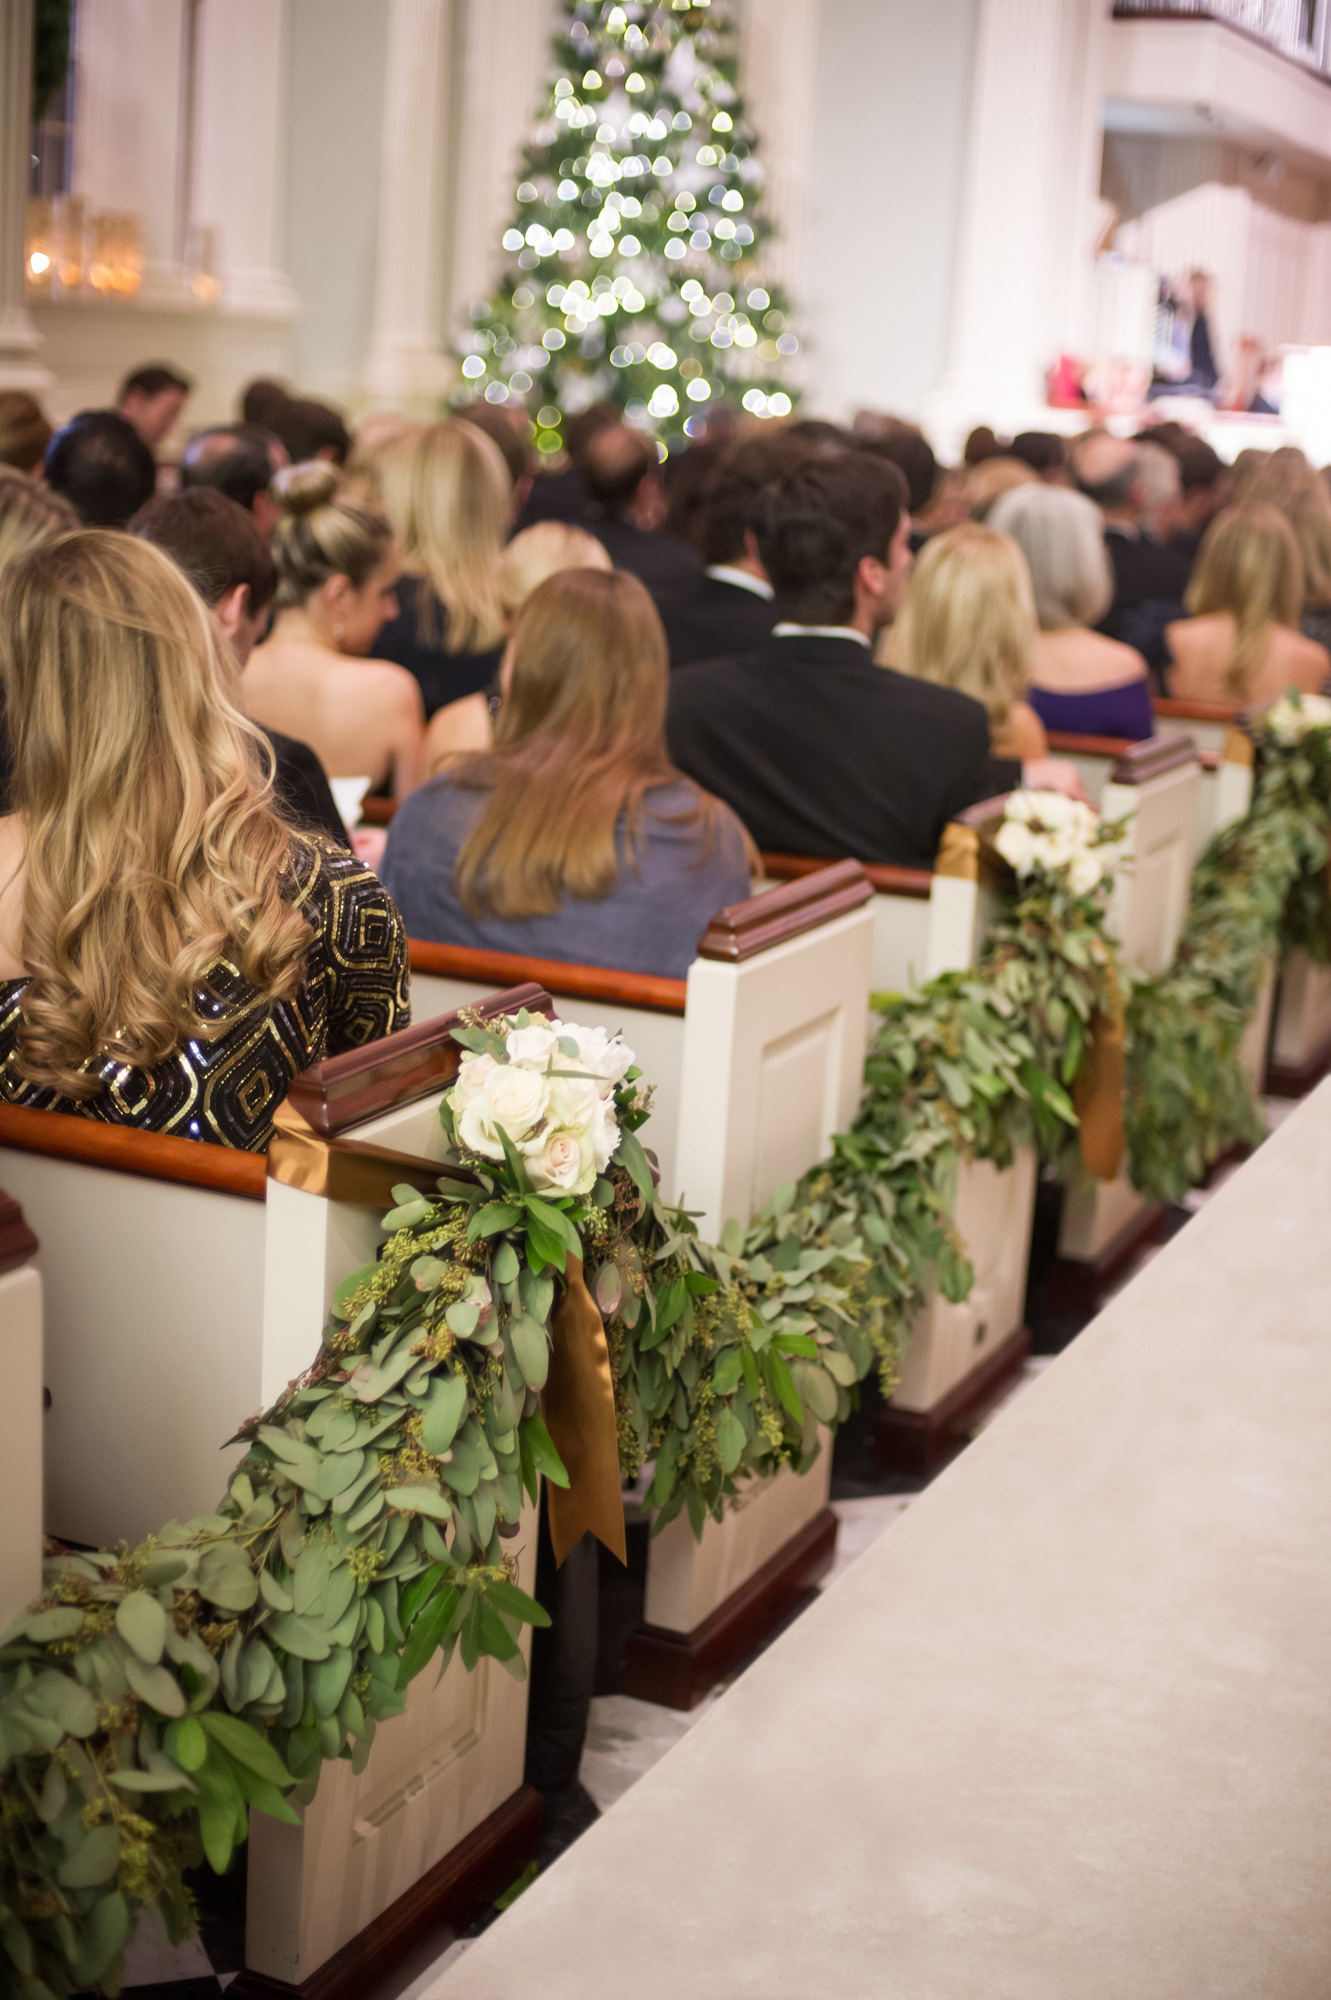 Green garlands with white roses on church pews